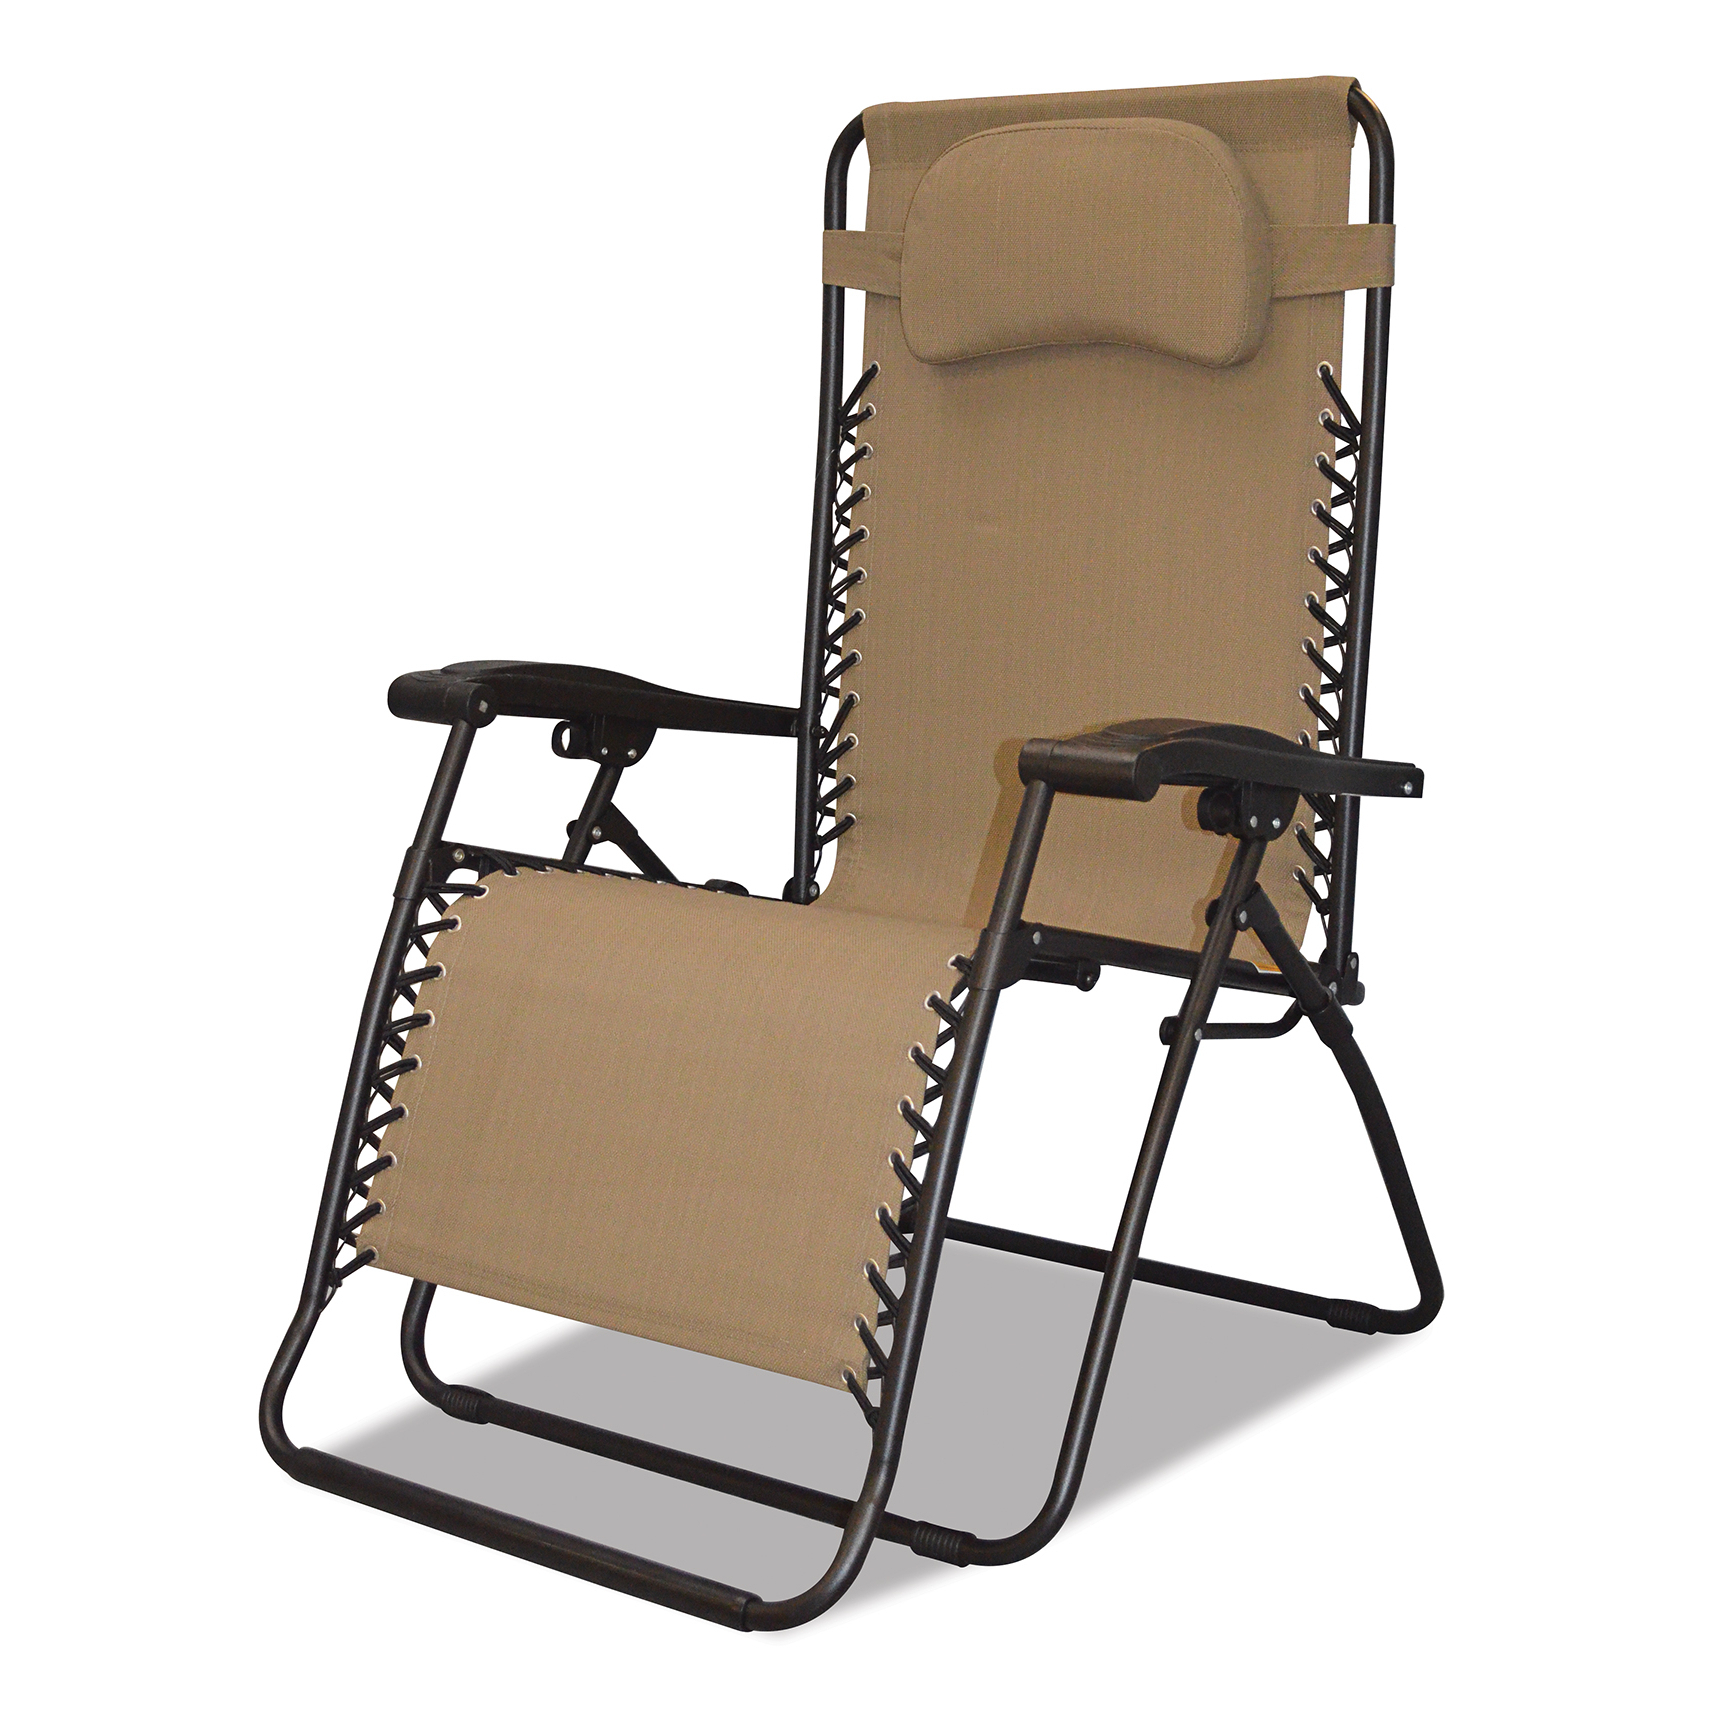 Widely Used Caravan Canopy Zero Gravity Chairs With Caravan Canopy Sports 80009000150 Beige Zero Gravity Chair (View 12 of 25)